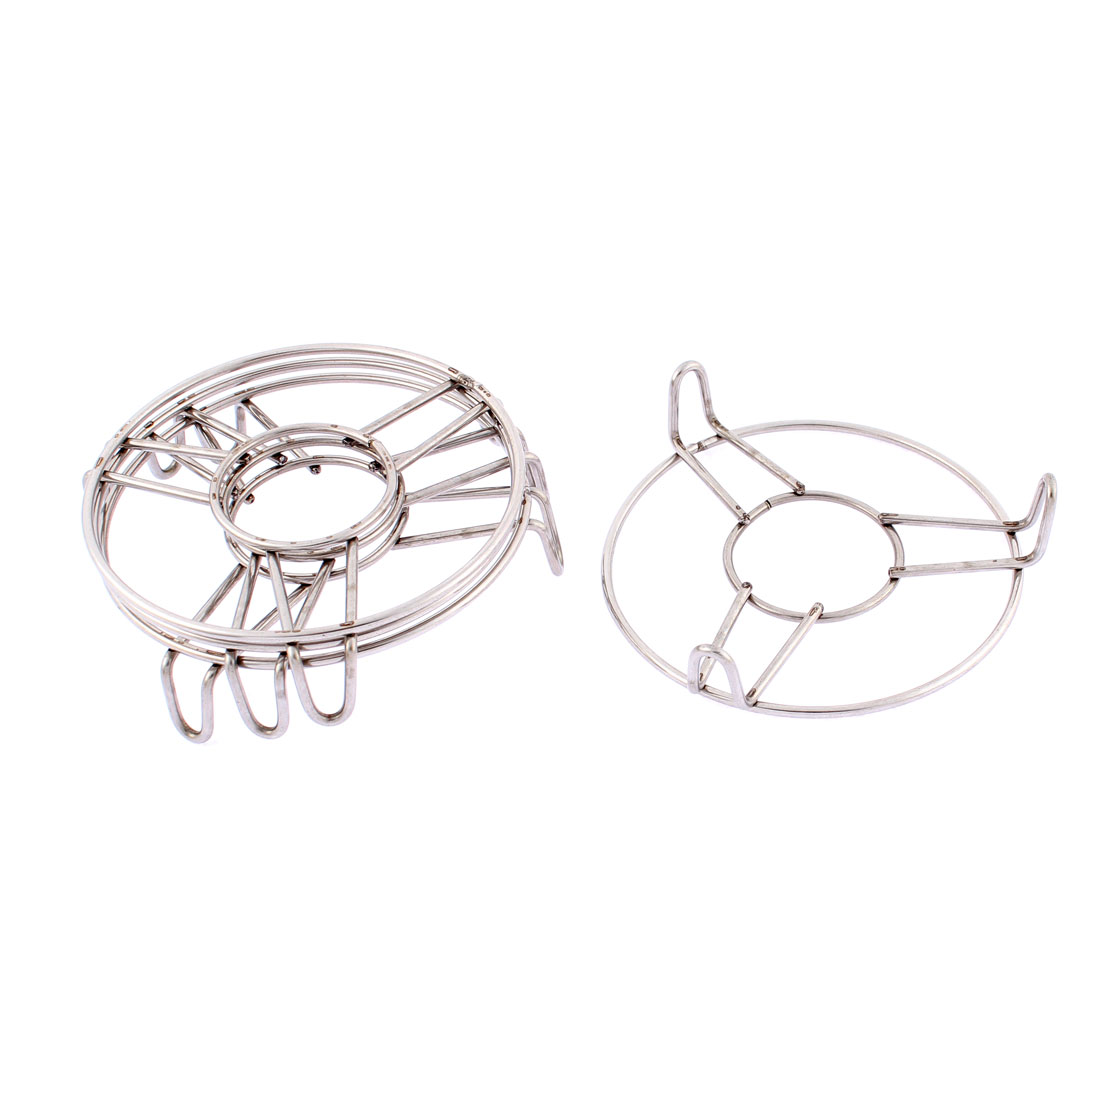 Home Stainless Steel Food Steaming Rack Stand 4 Inch x 1 Inch 4 Pcs